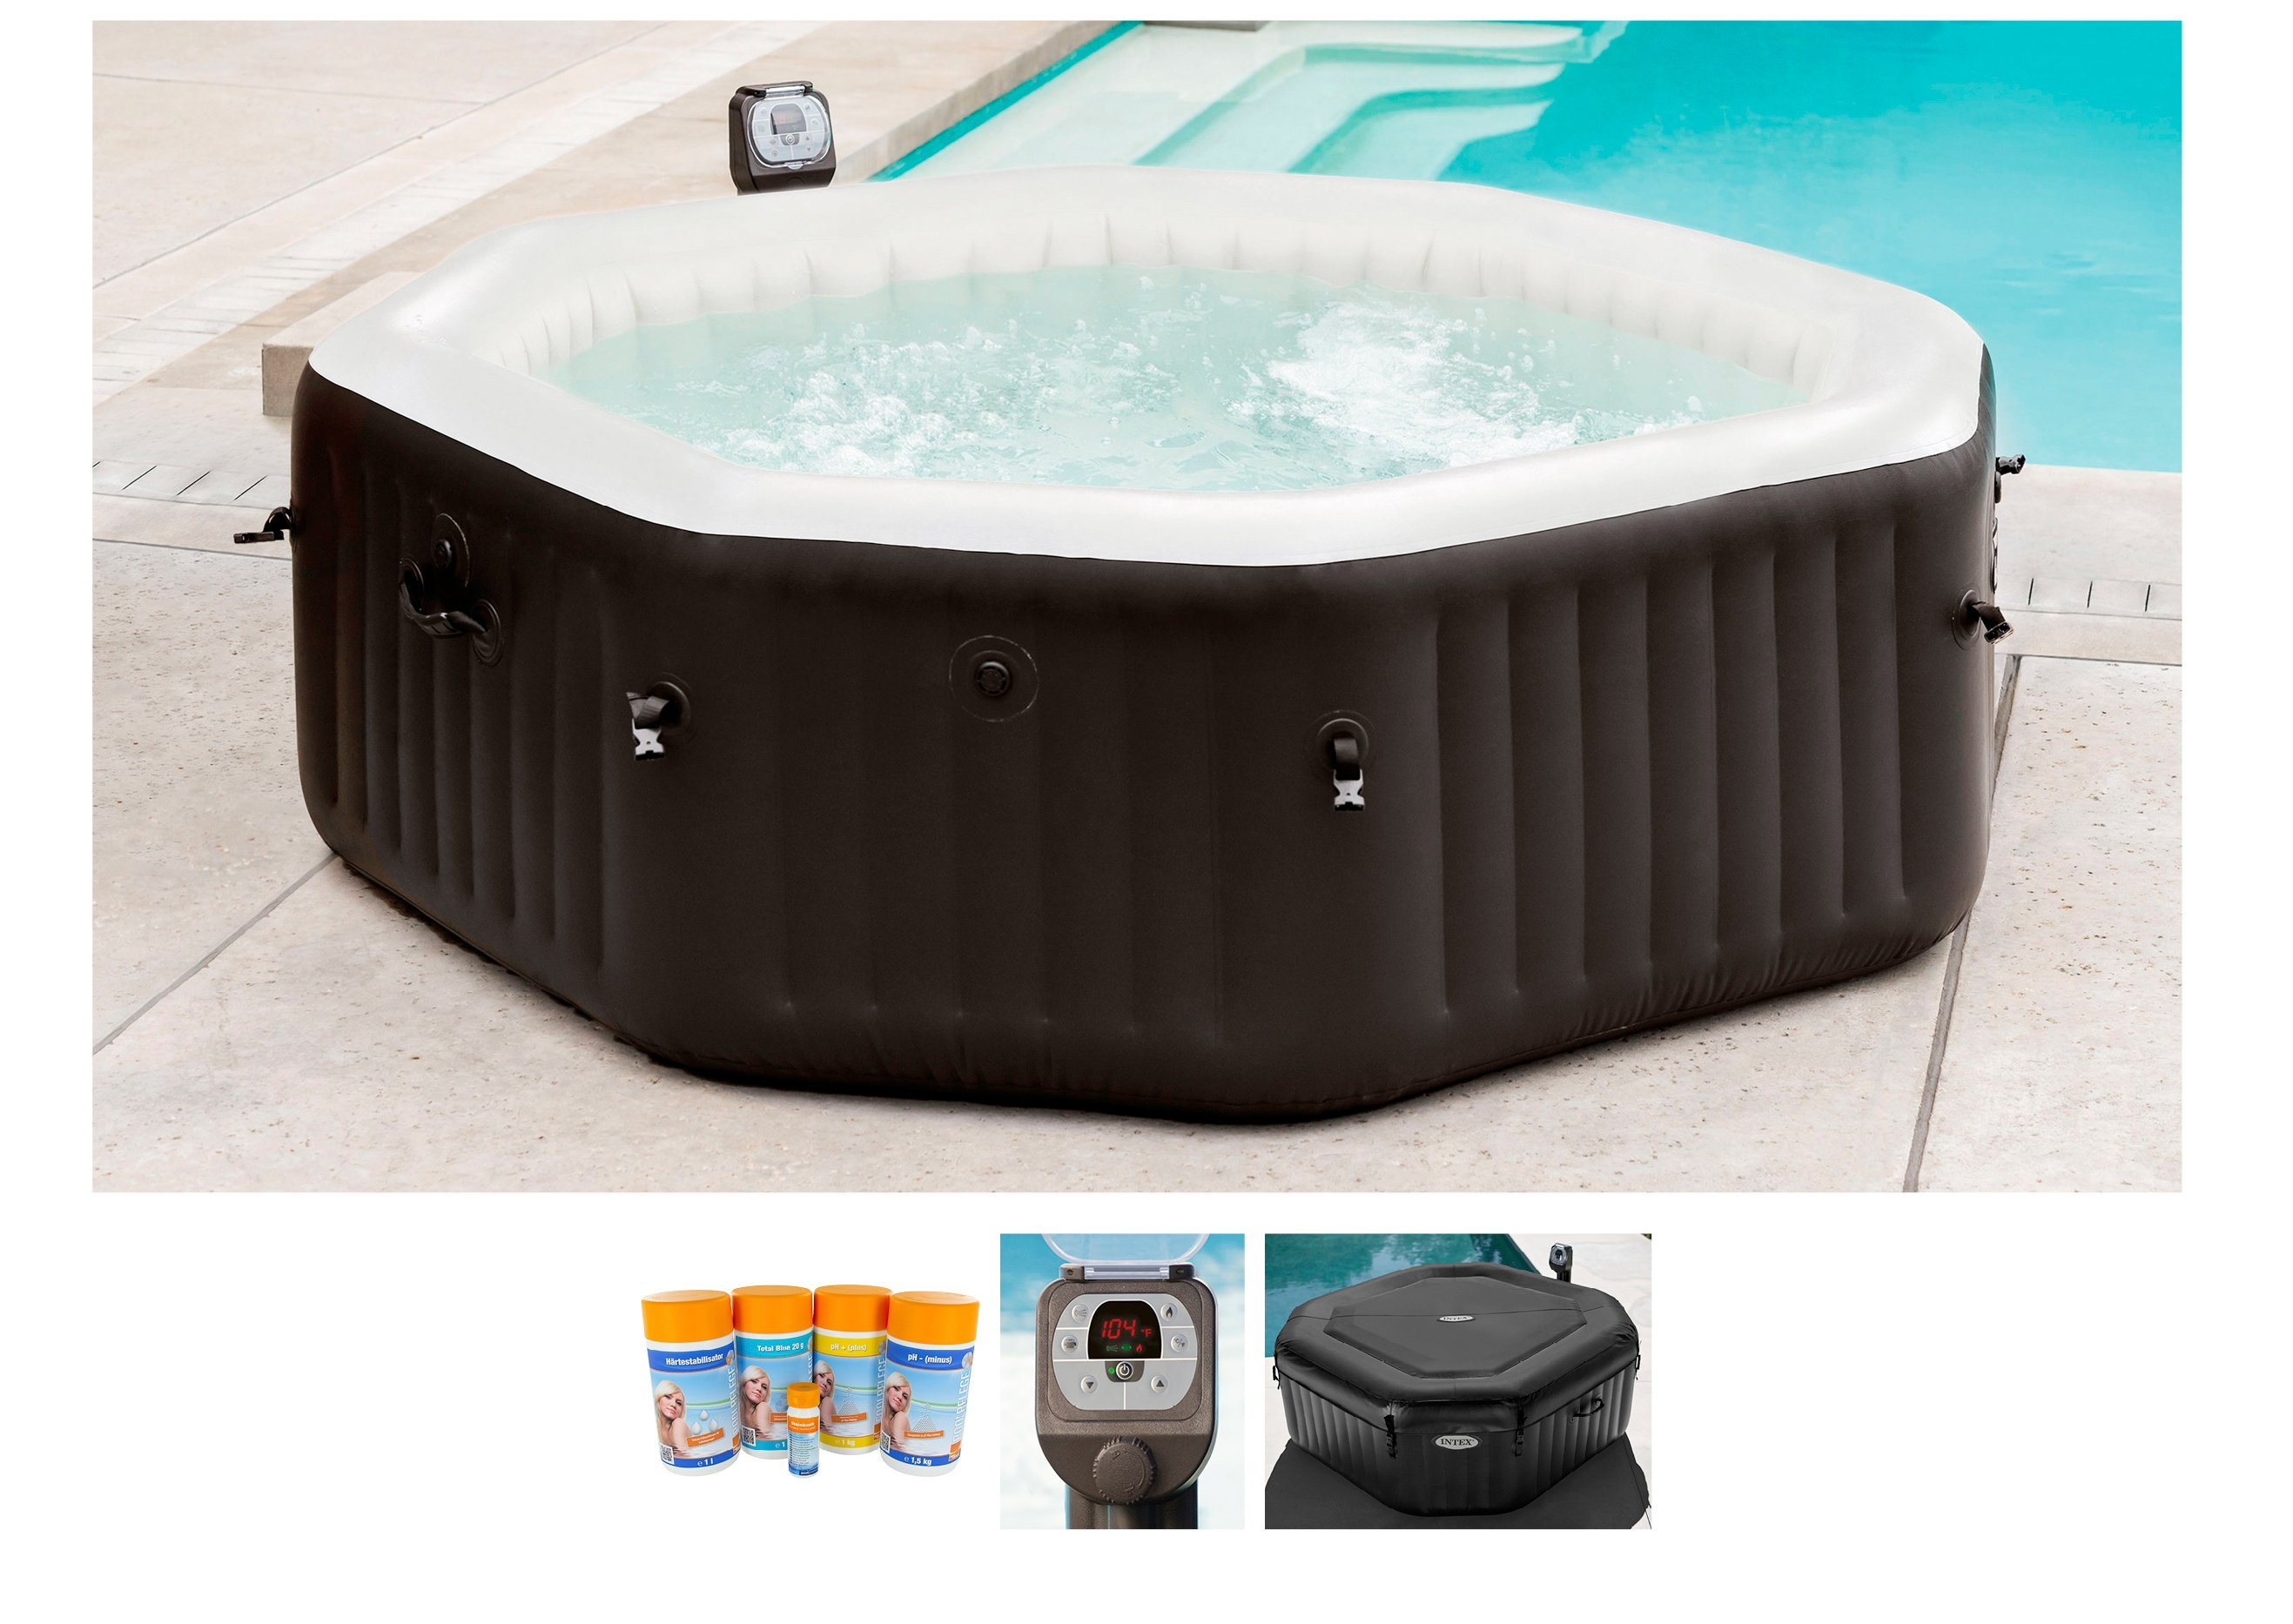 Tolle Intex 16 Fuß Ultra Rahmen Pool Fotos - Bilderrahmen Ideen ...